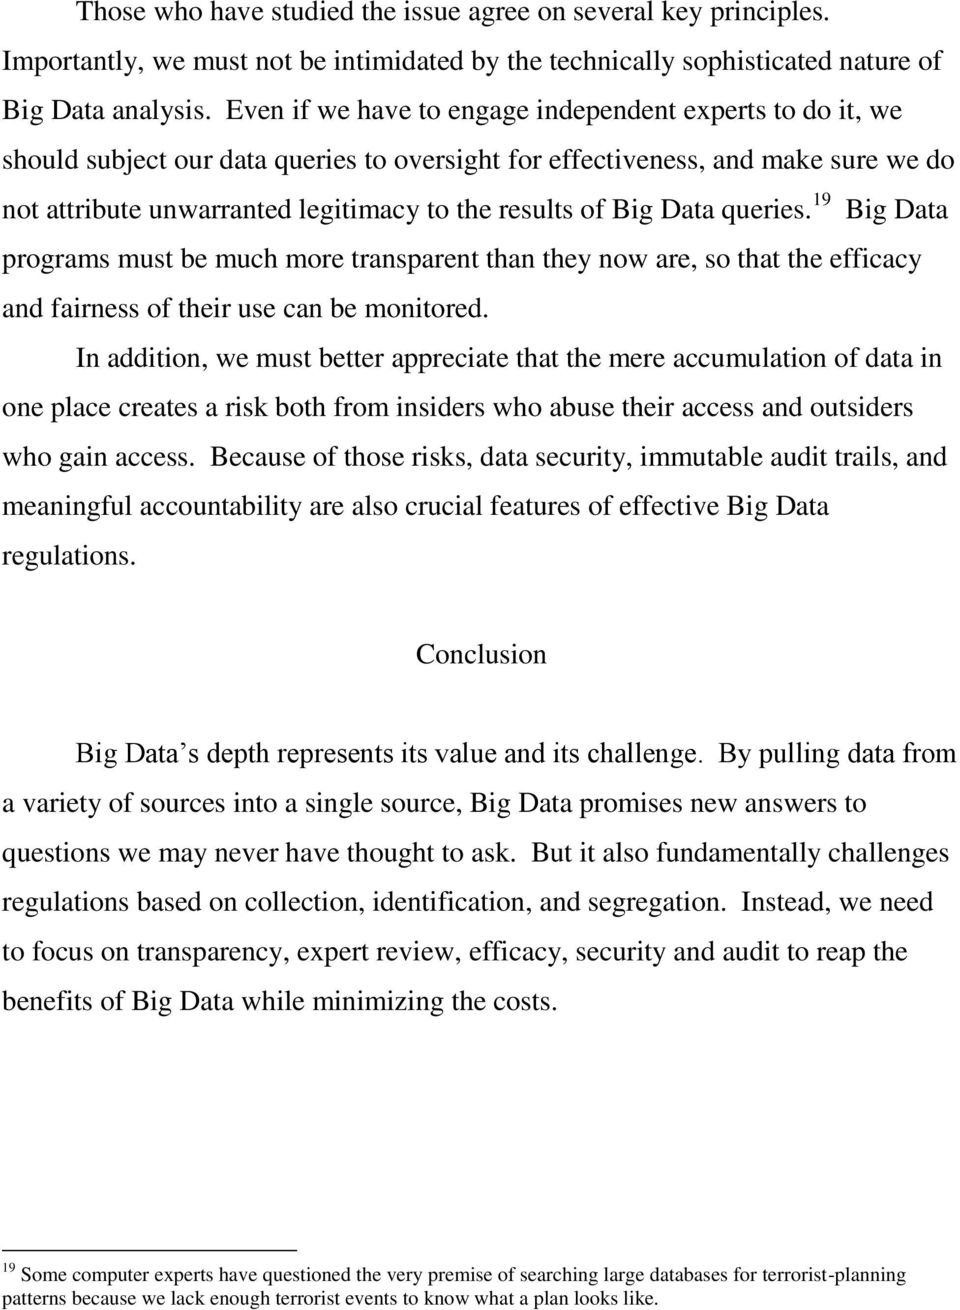 Big Data queries. 19 Big Data programs must be much more transparent than they now are, so that the efficacy and fairness of their use can be monitored.